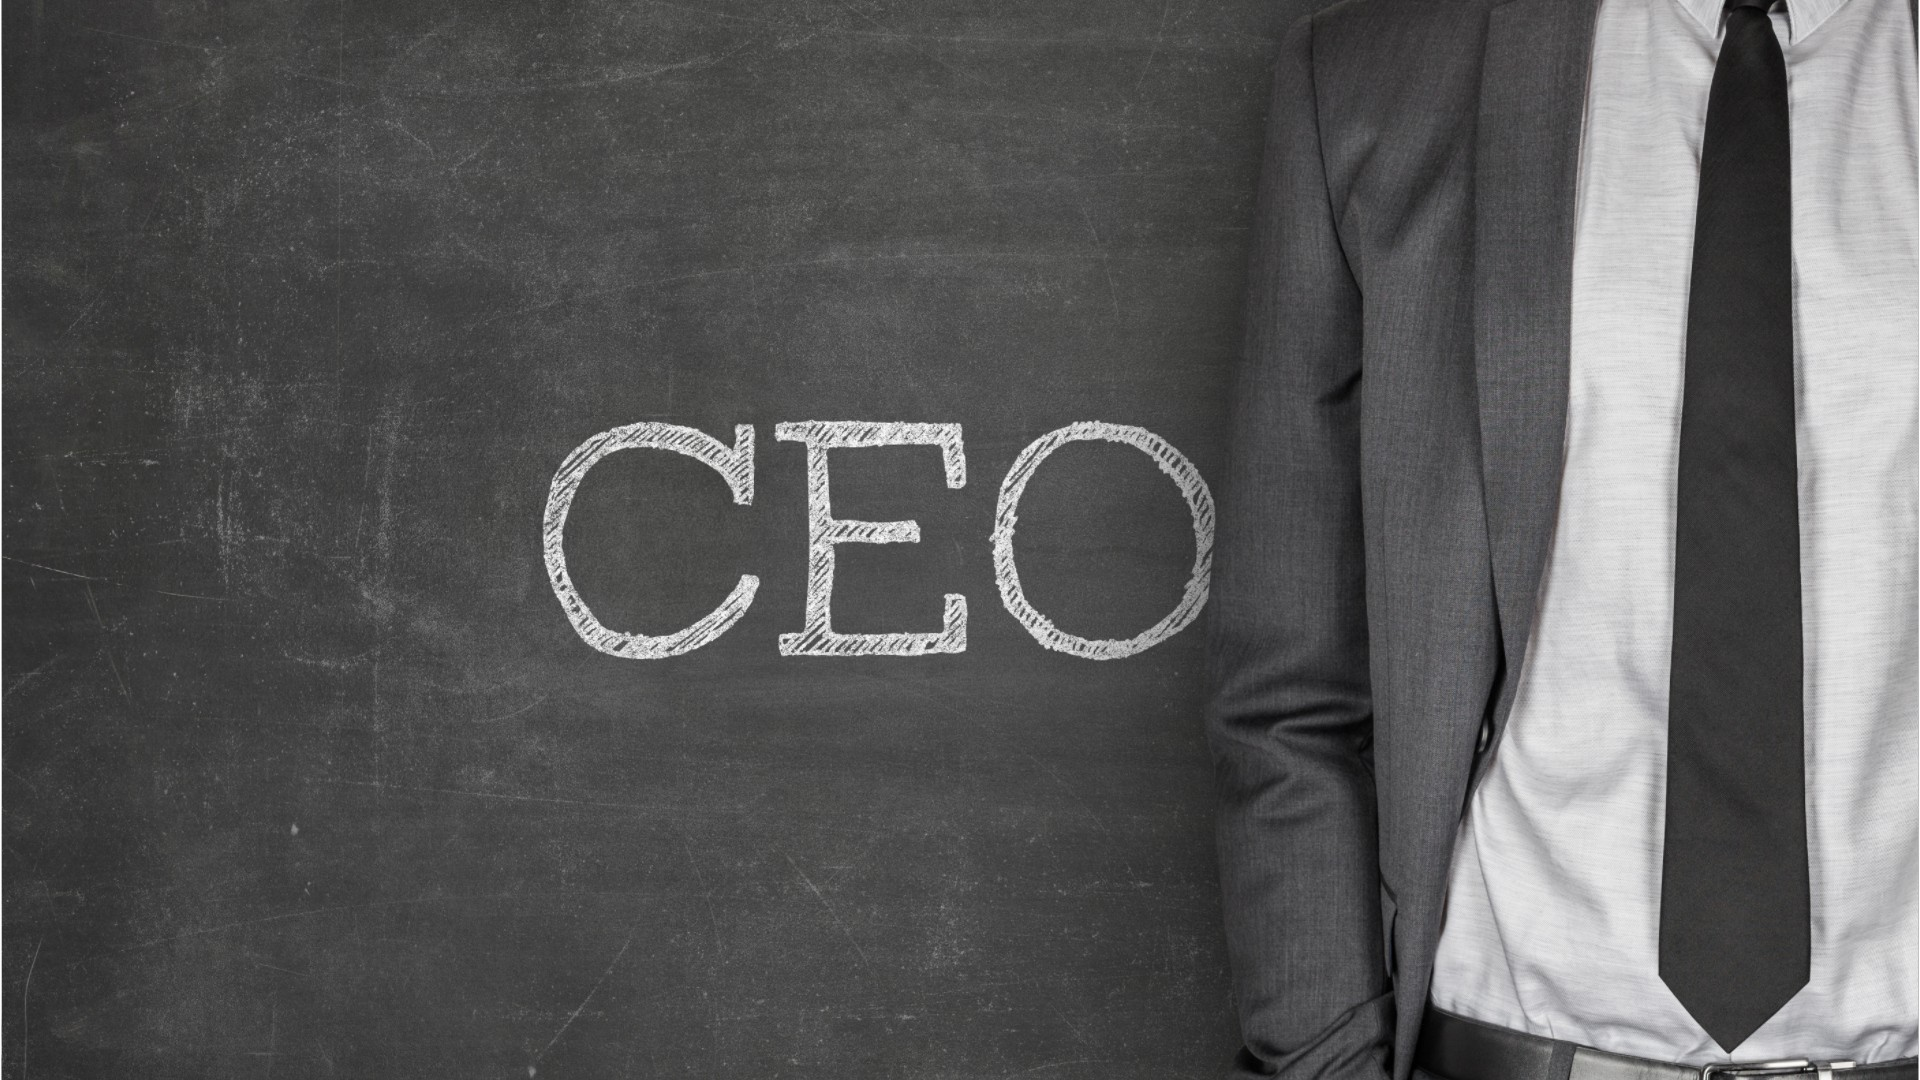 torso of person wearing a suit jacket and tie, standing in front of C E O written on a chalkboard